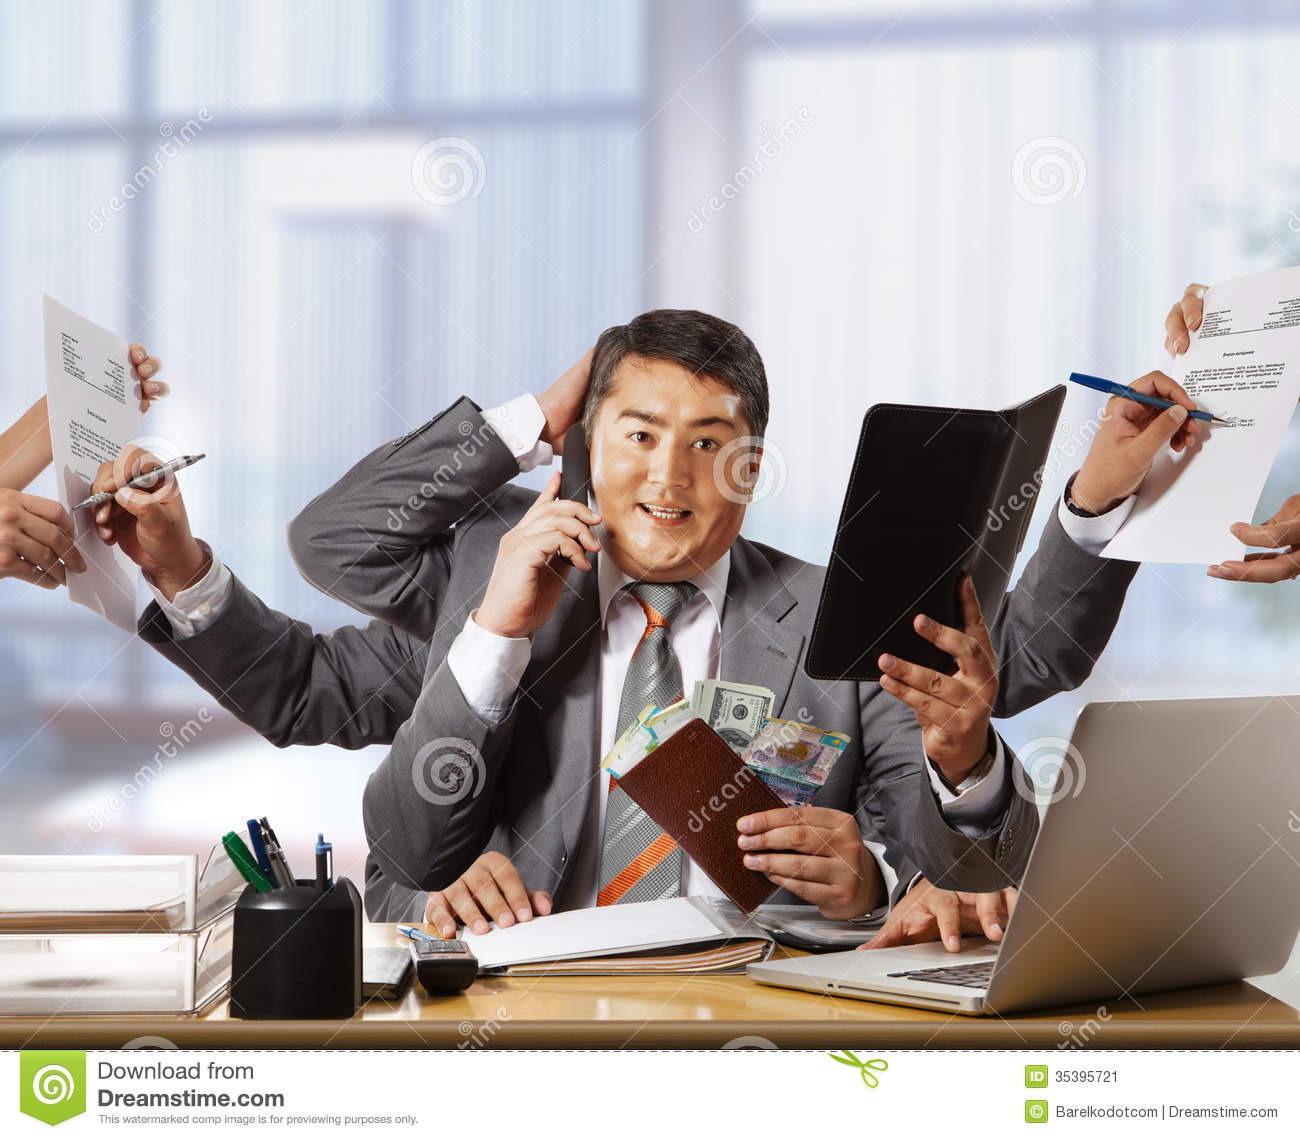 Technology Management Image: Businessman With Eight Hands In Elegant Suit Working Hold